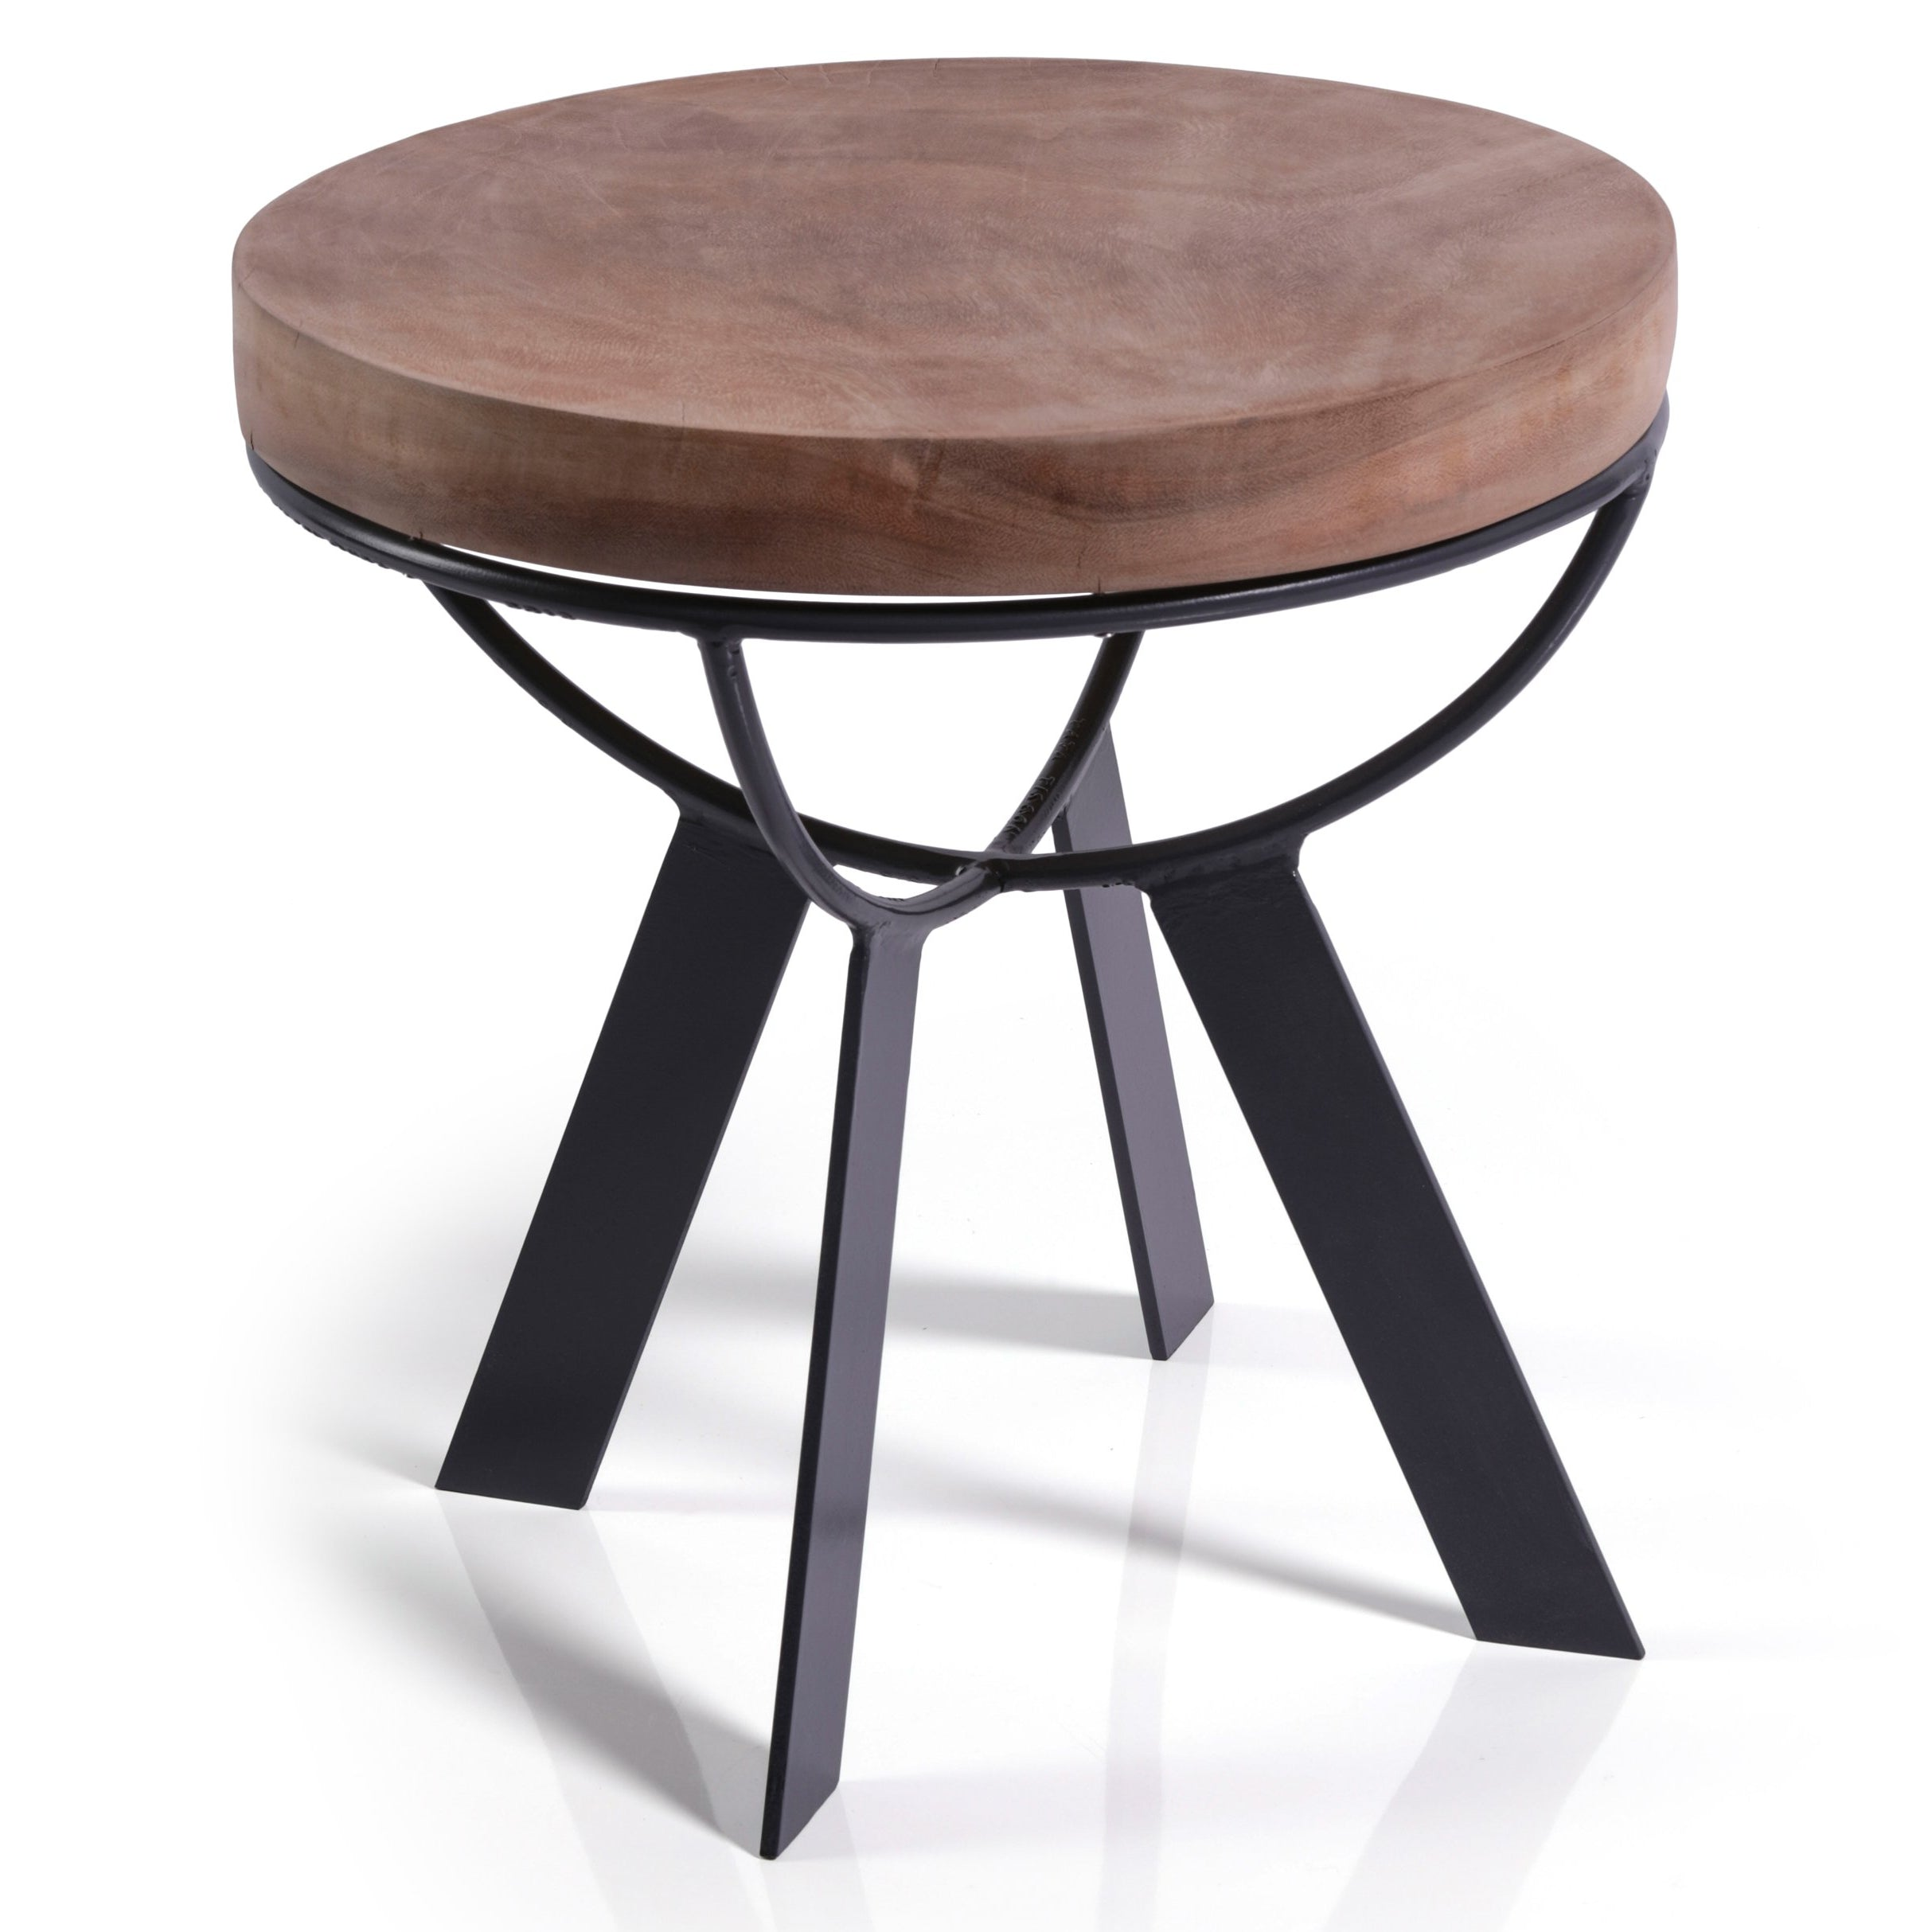 Larissa Acacia Wood Accent Table - CARLYLE AVENUE